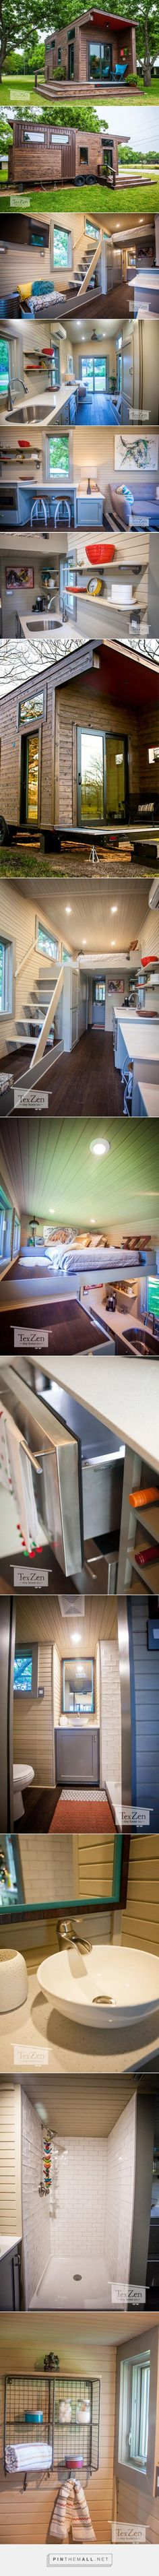 Single Loft by TexZen Tiny Home Co. - Tiny Living... - a grouped images picture - Pin Them All